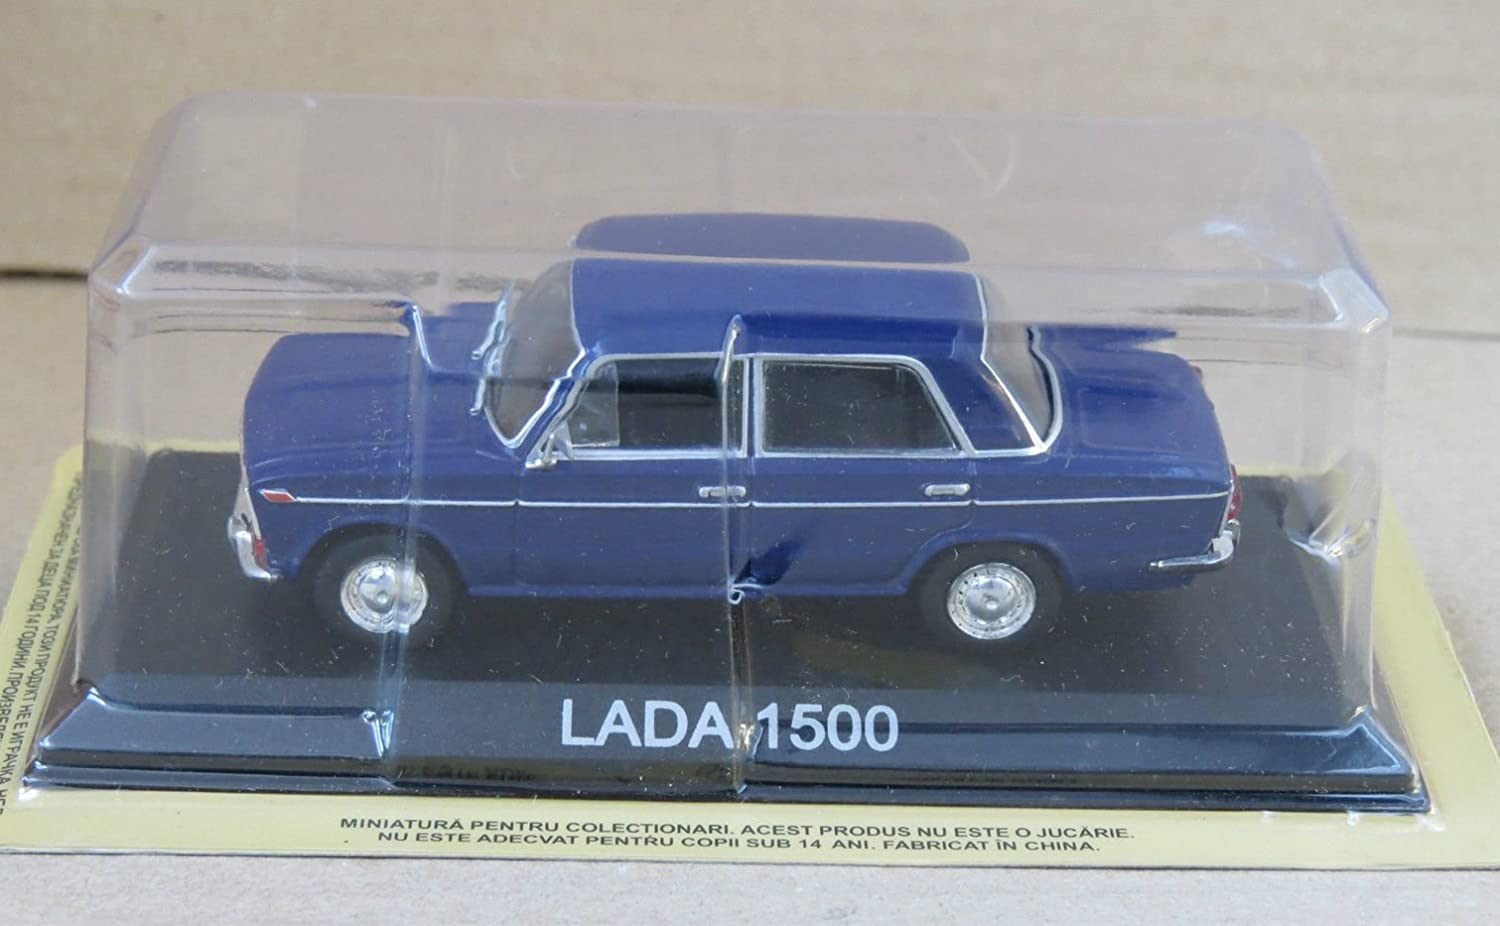 1:43 EAST CAR : LADA 1500 BLEUE VOITURE MINIATURE COLLECTION 1/43 IXO LEGENDARY CAR AUTO B09 Unbekannt